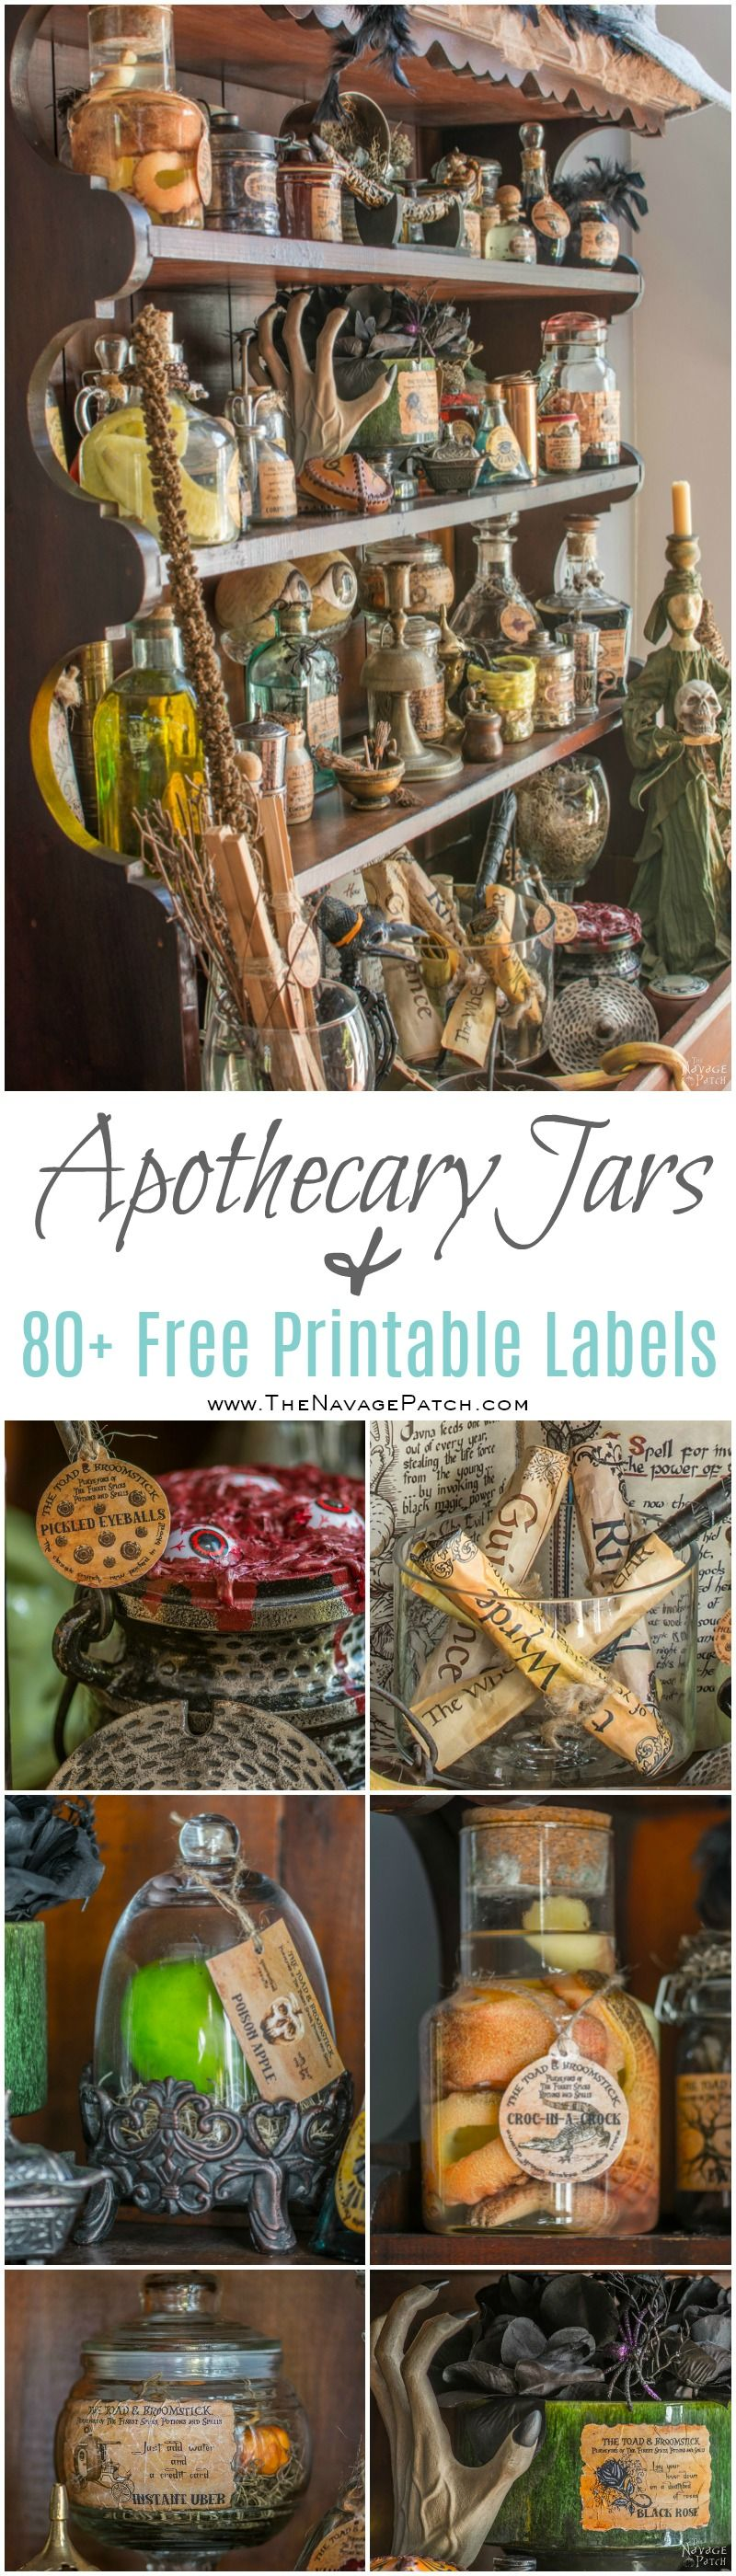 graphic regarding Harry Potter Apothecary Labels Free Printable known as Apothecary Jars and Absolutely free Printable Labels - The Navage Patch